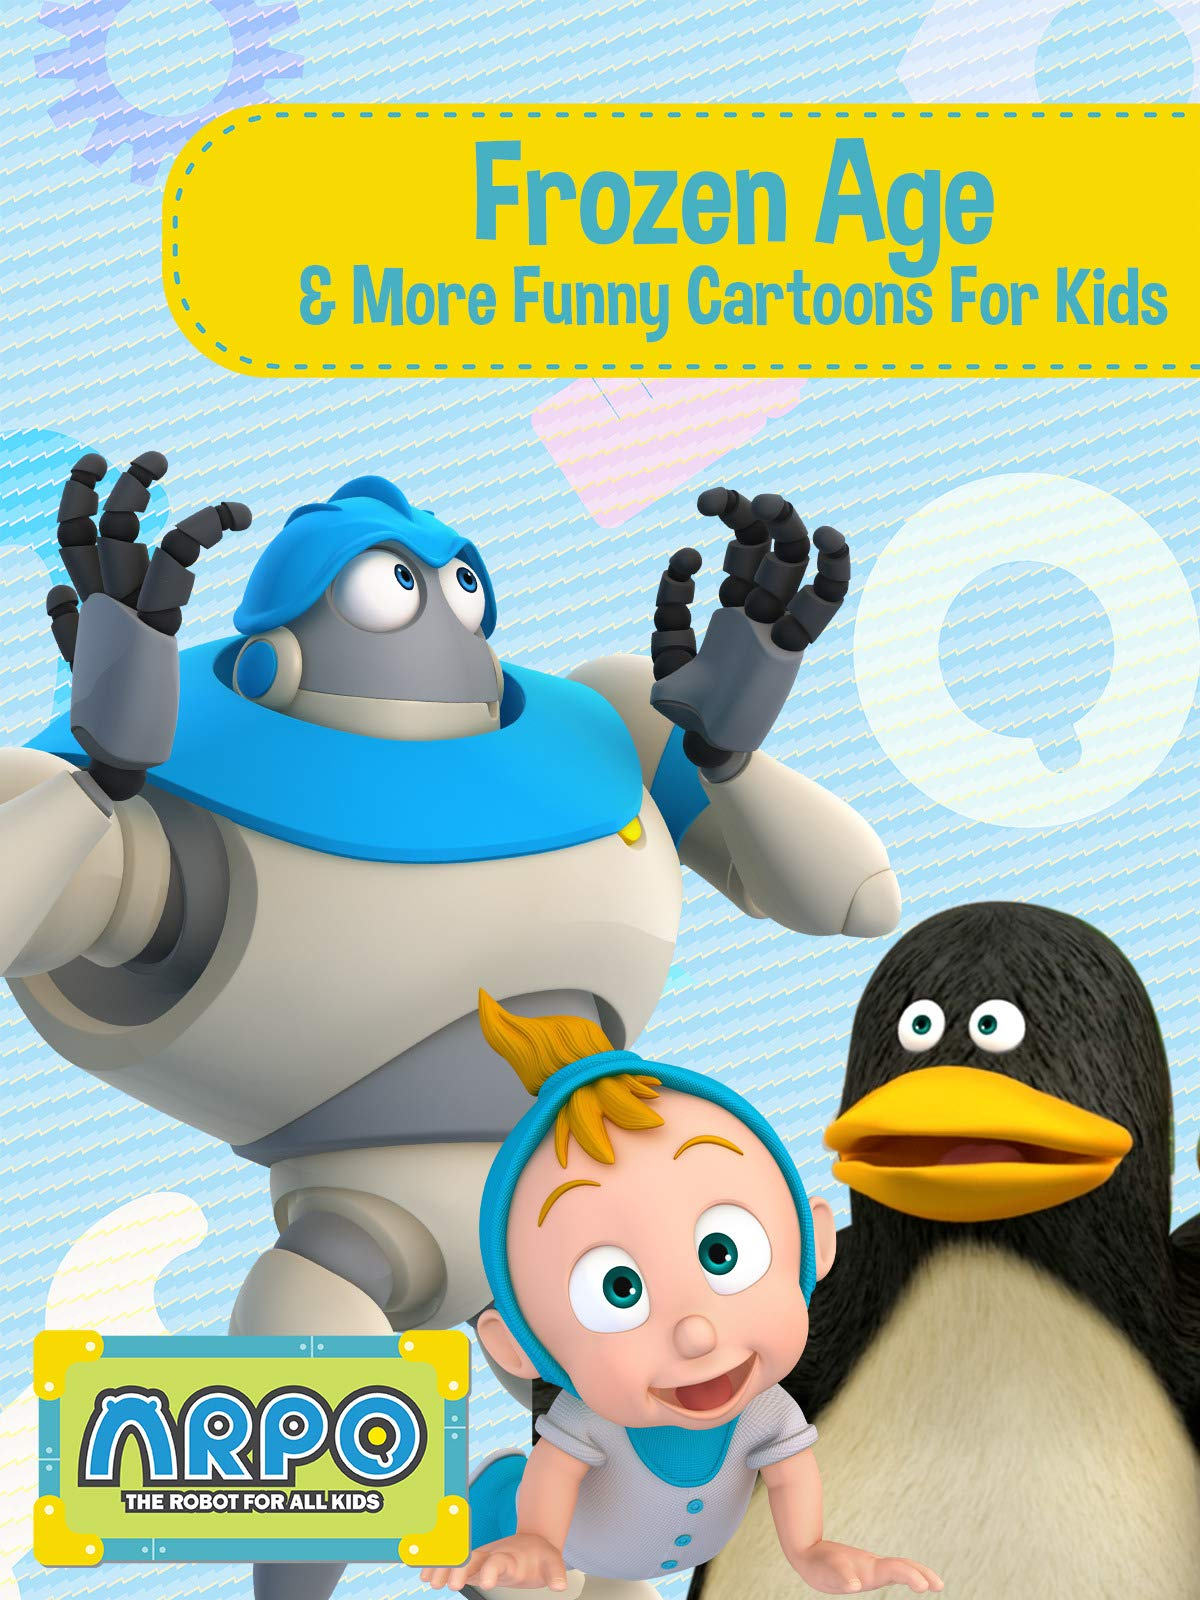 Arpo the Robot for All Kids - Frozen Age & More Funny Cartoons for Kids on Amazon Prime Video UK